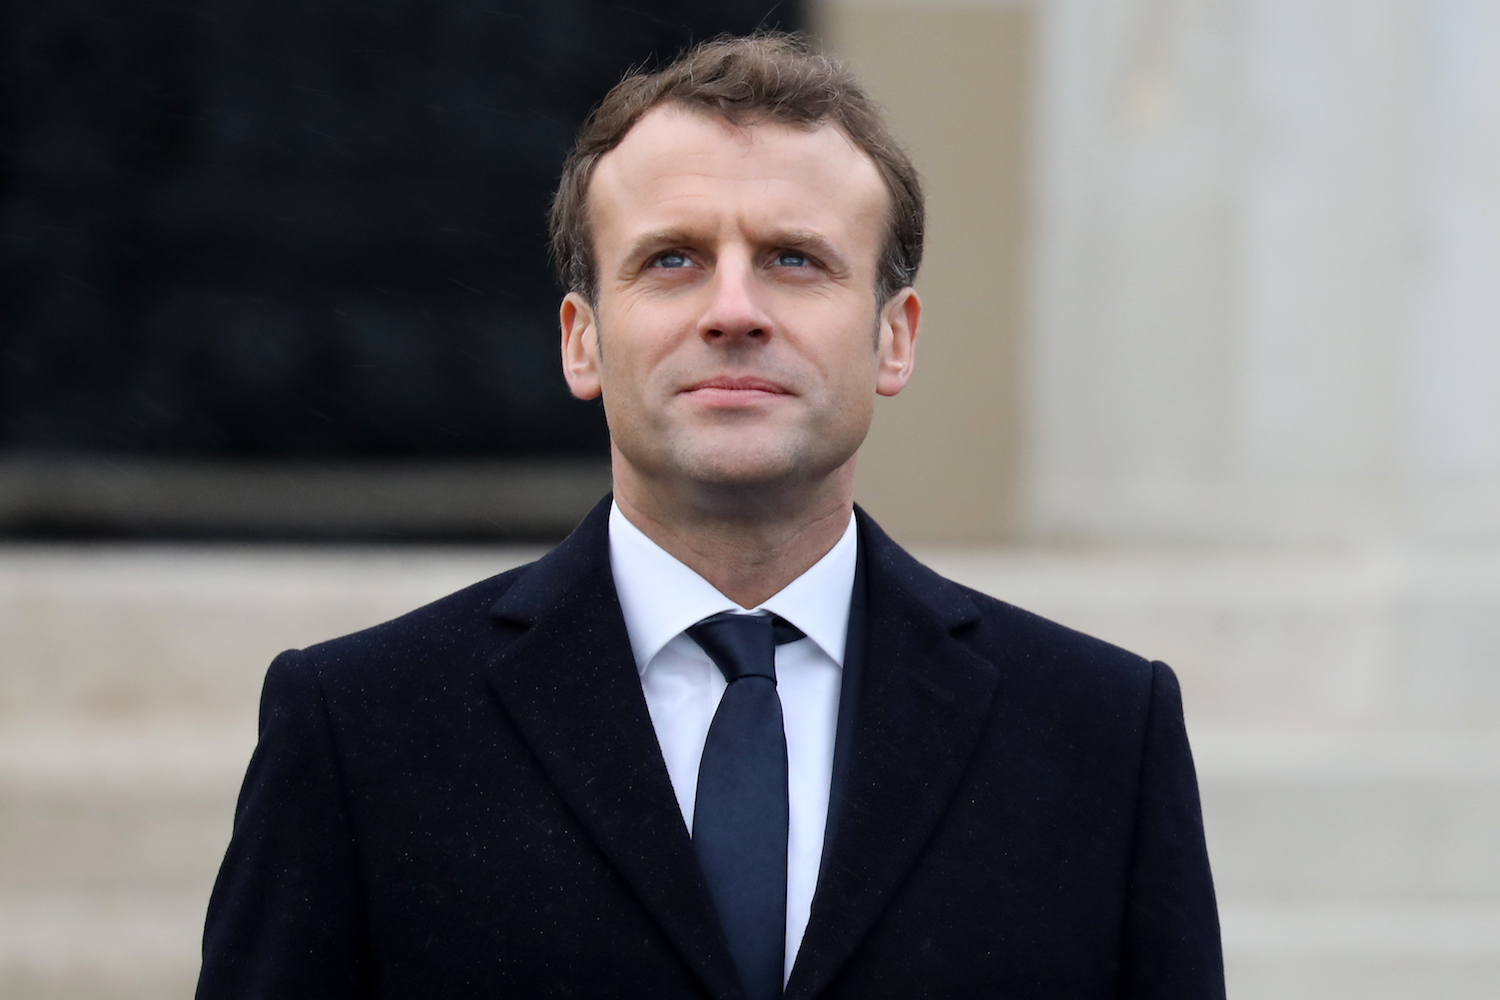 Macron will speak on Wednesday with Rohaní to save the nuclear agreement